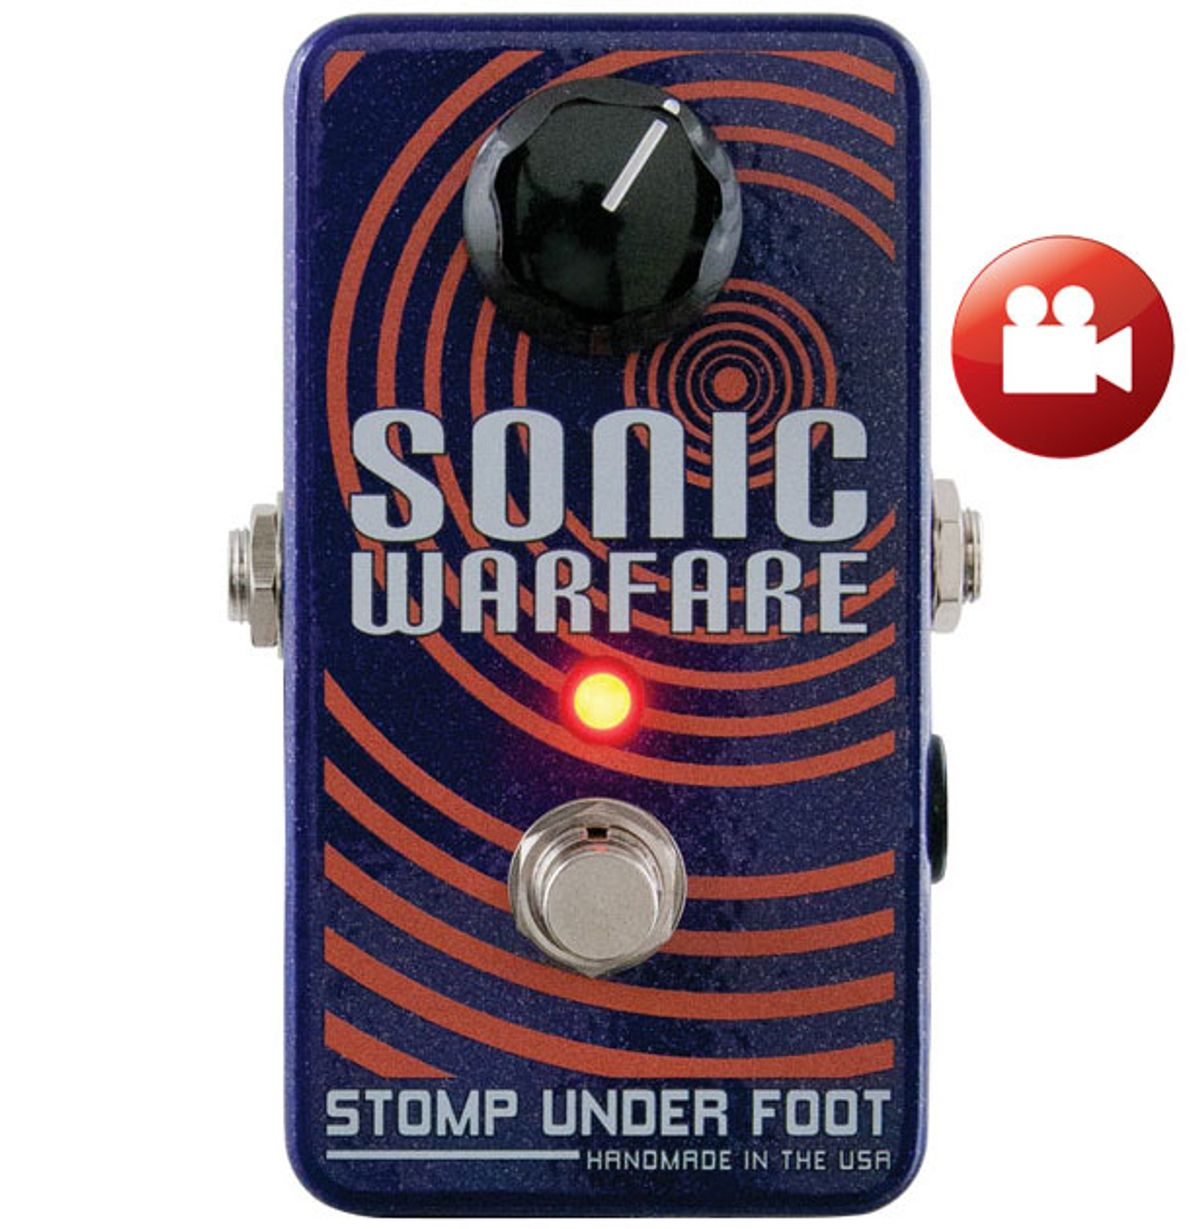 Stomp Under Foot Sonic Warfare Review